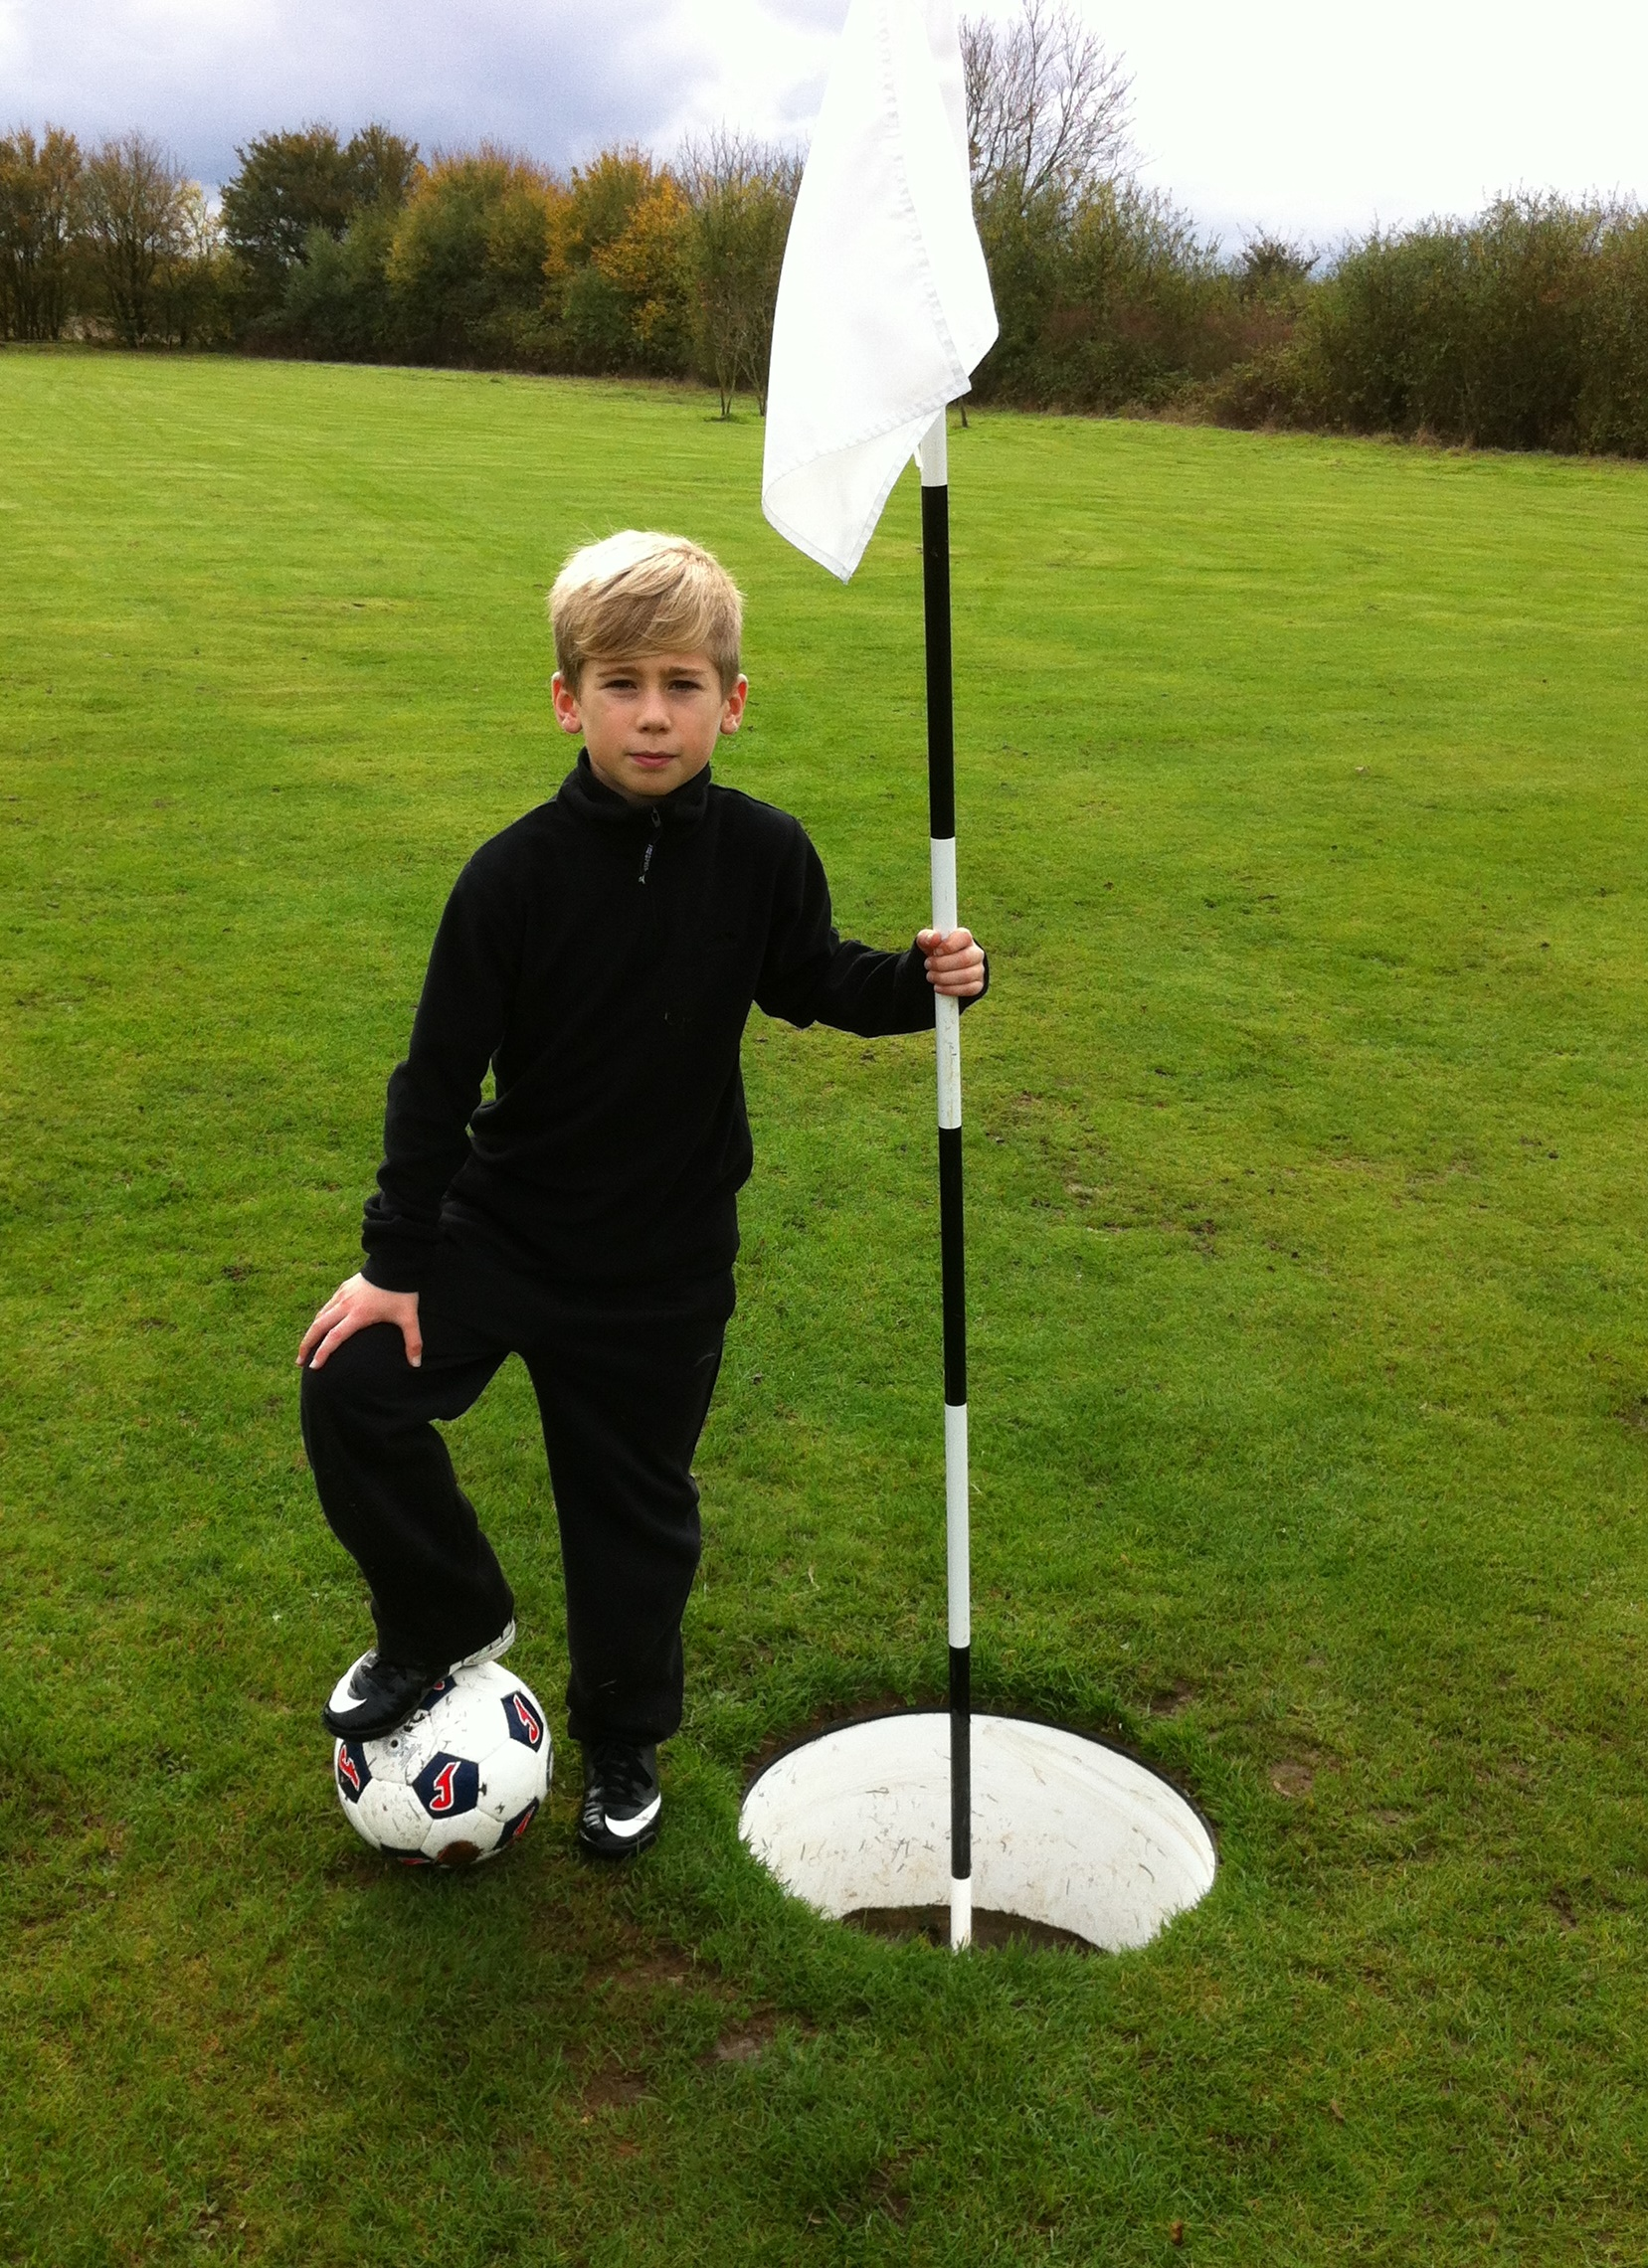 At the FootGolf Hole